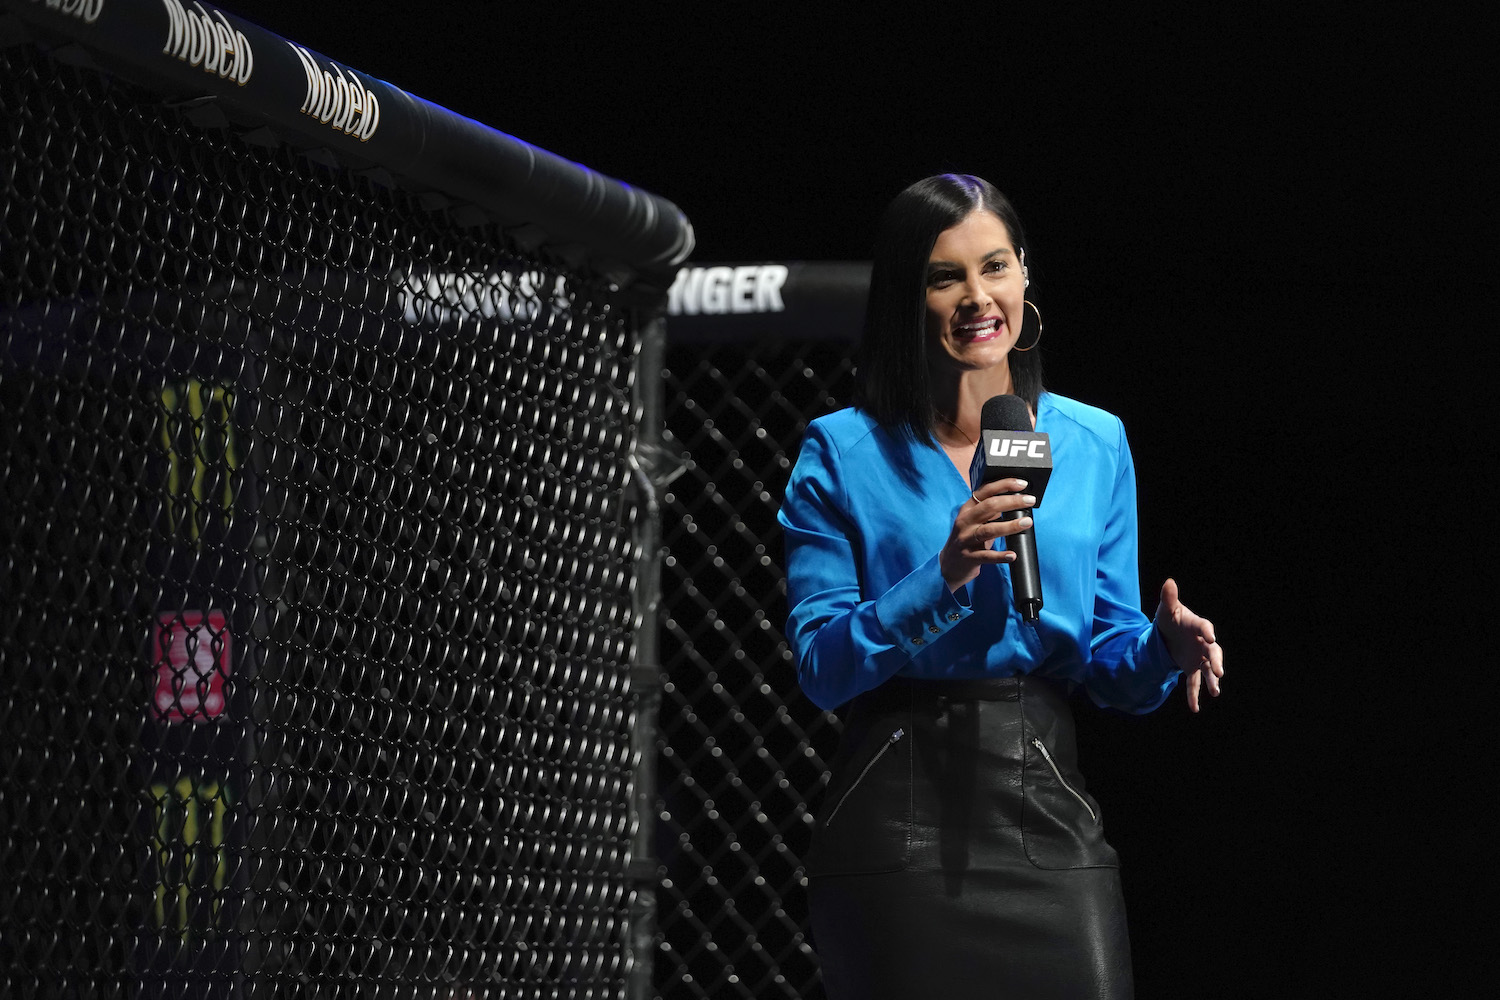 Who Is Megan Olivi?